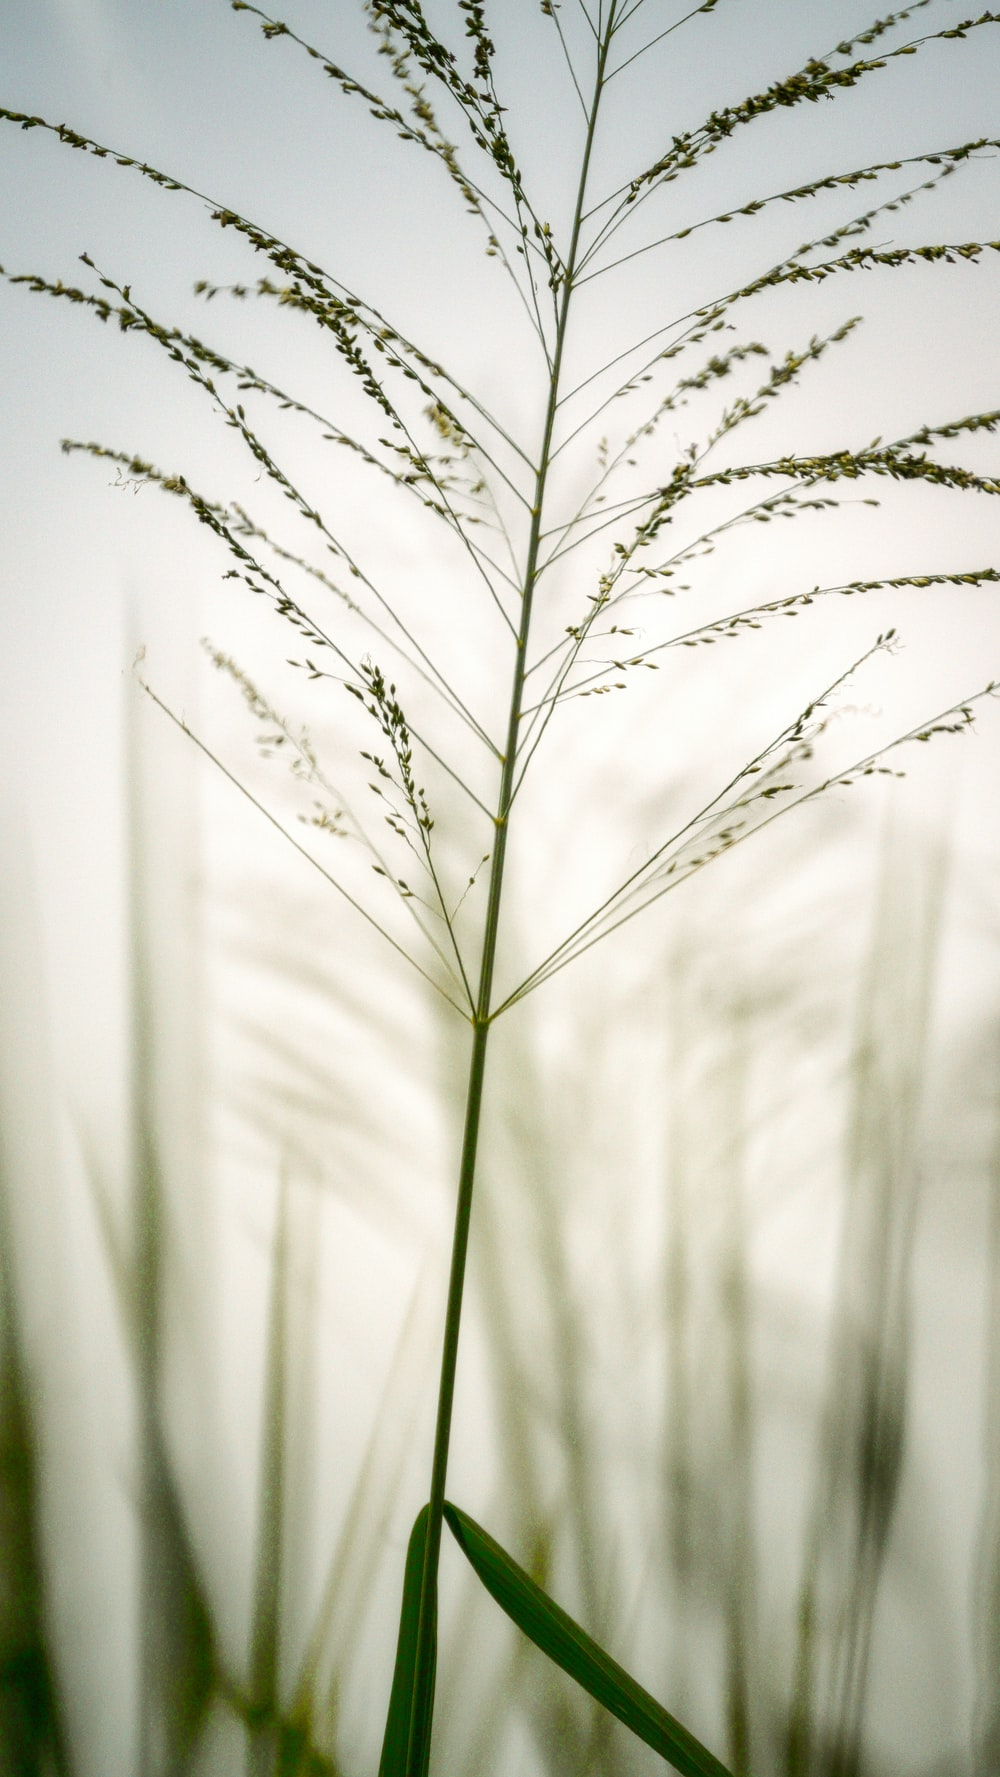 grayscale photo of grass with water droplets